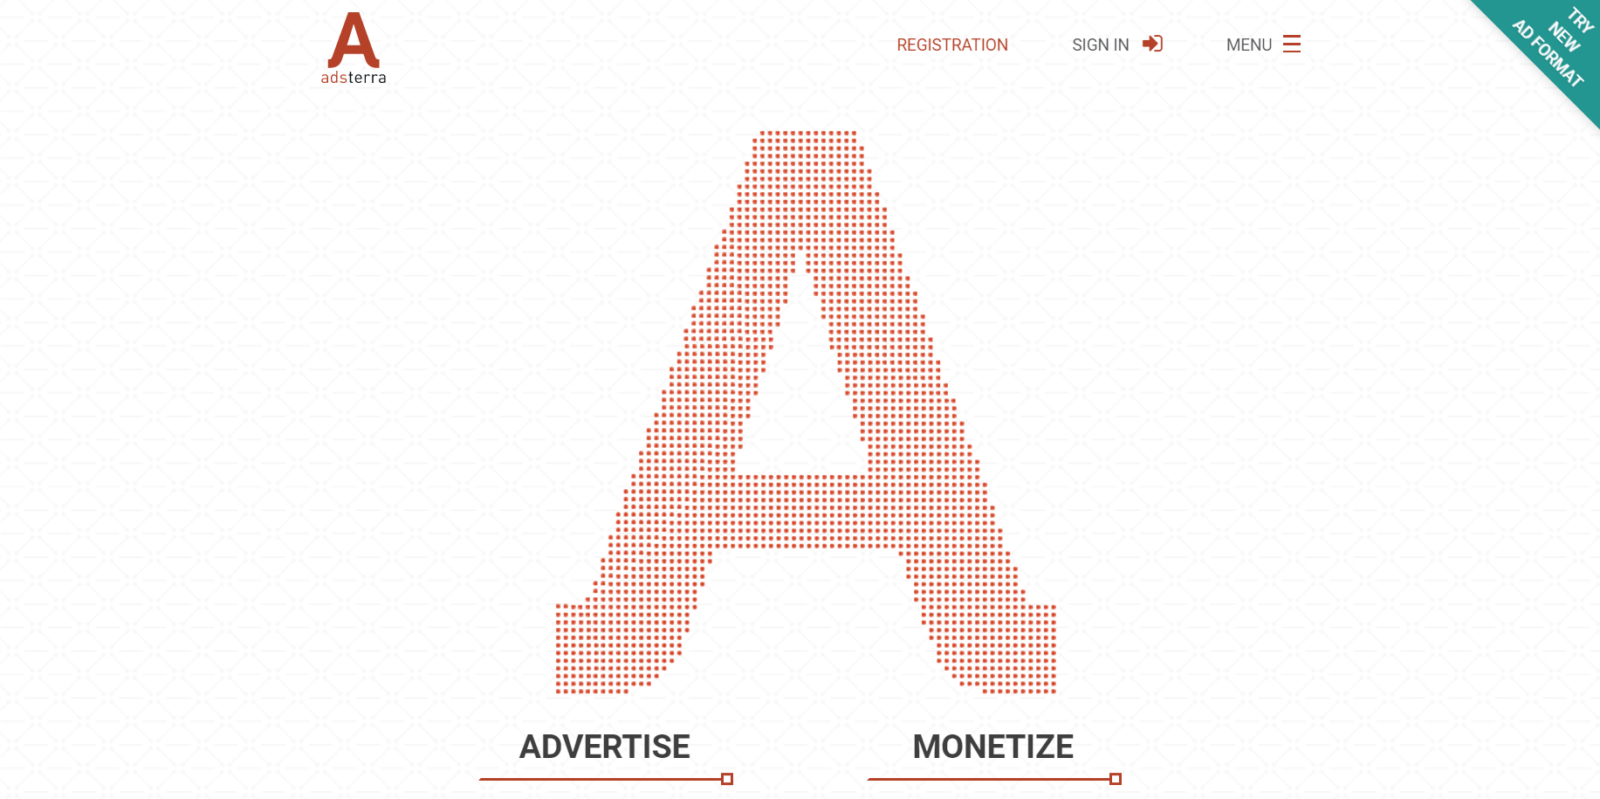 Adsterra: Monetize Your Traffic